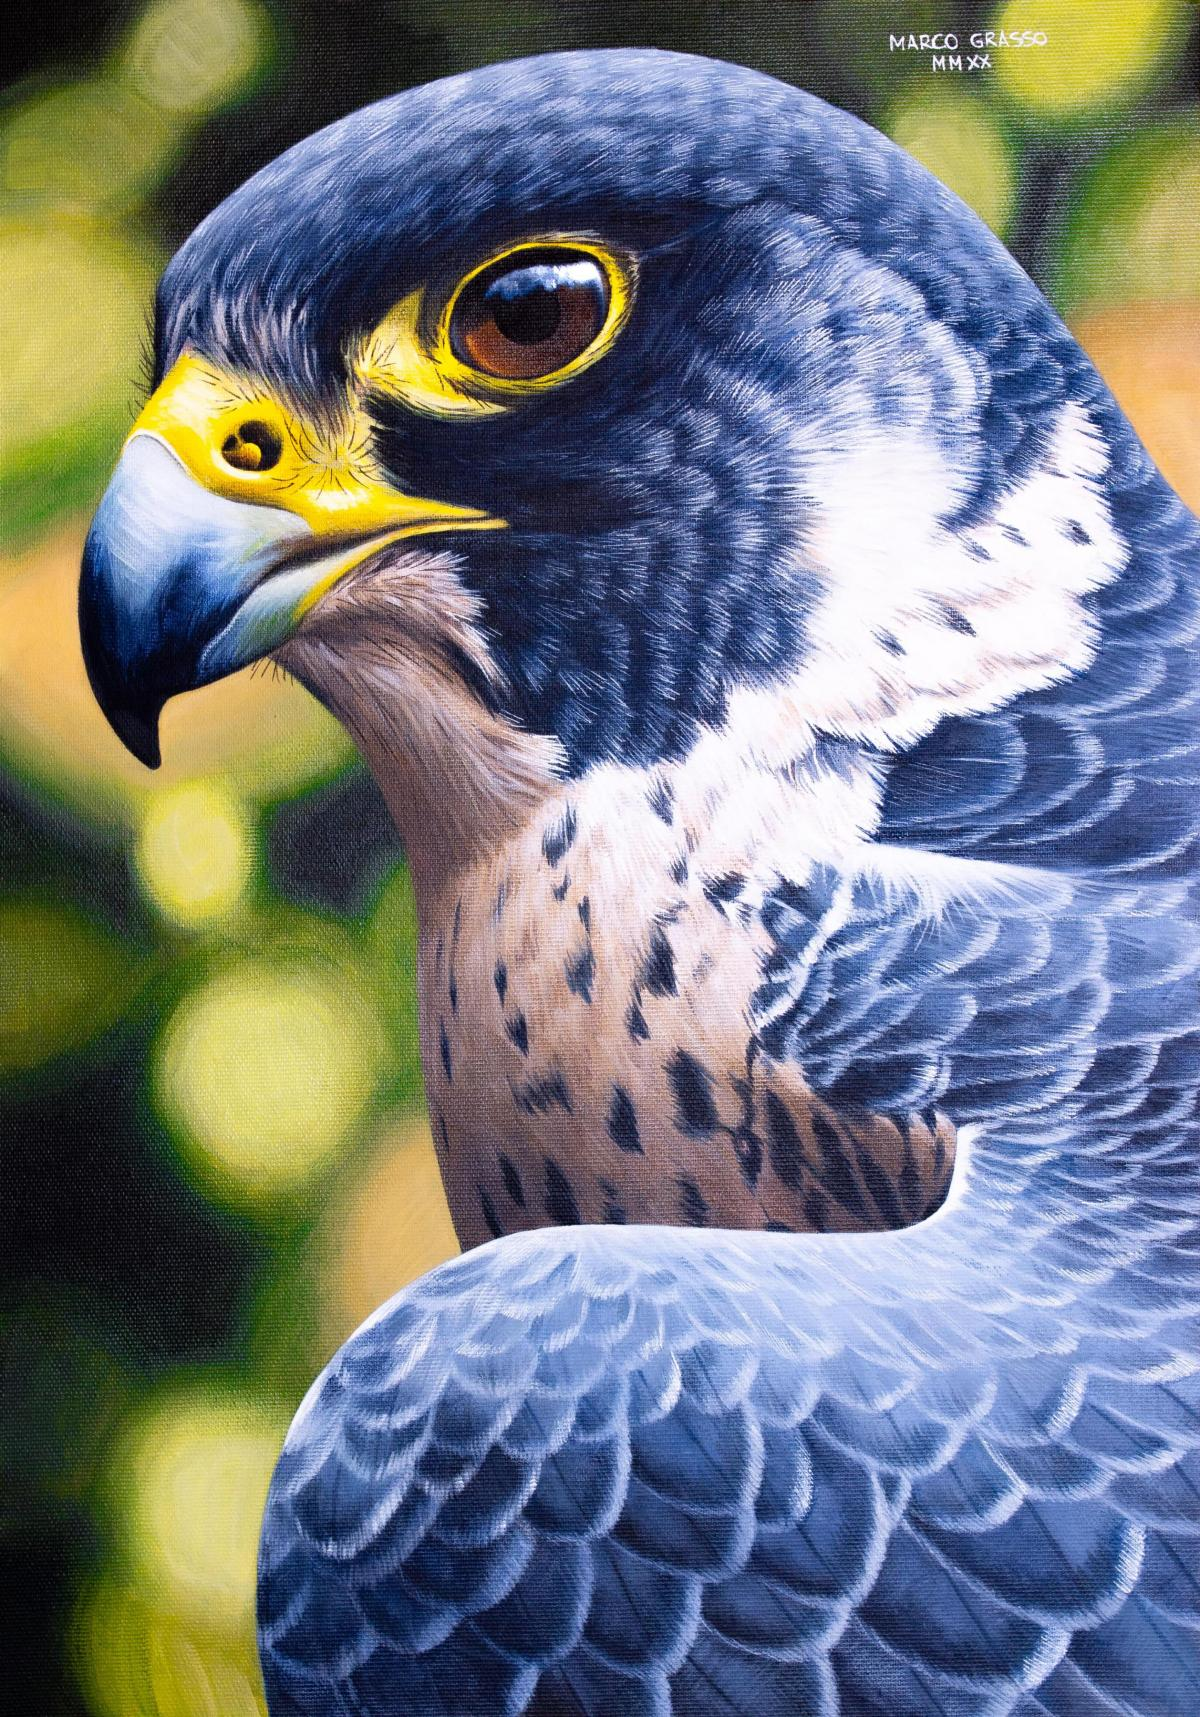 Peregrine Falcon   Wallhanging by Marco Grasso   Artists for Conservation 2021